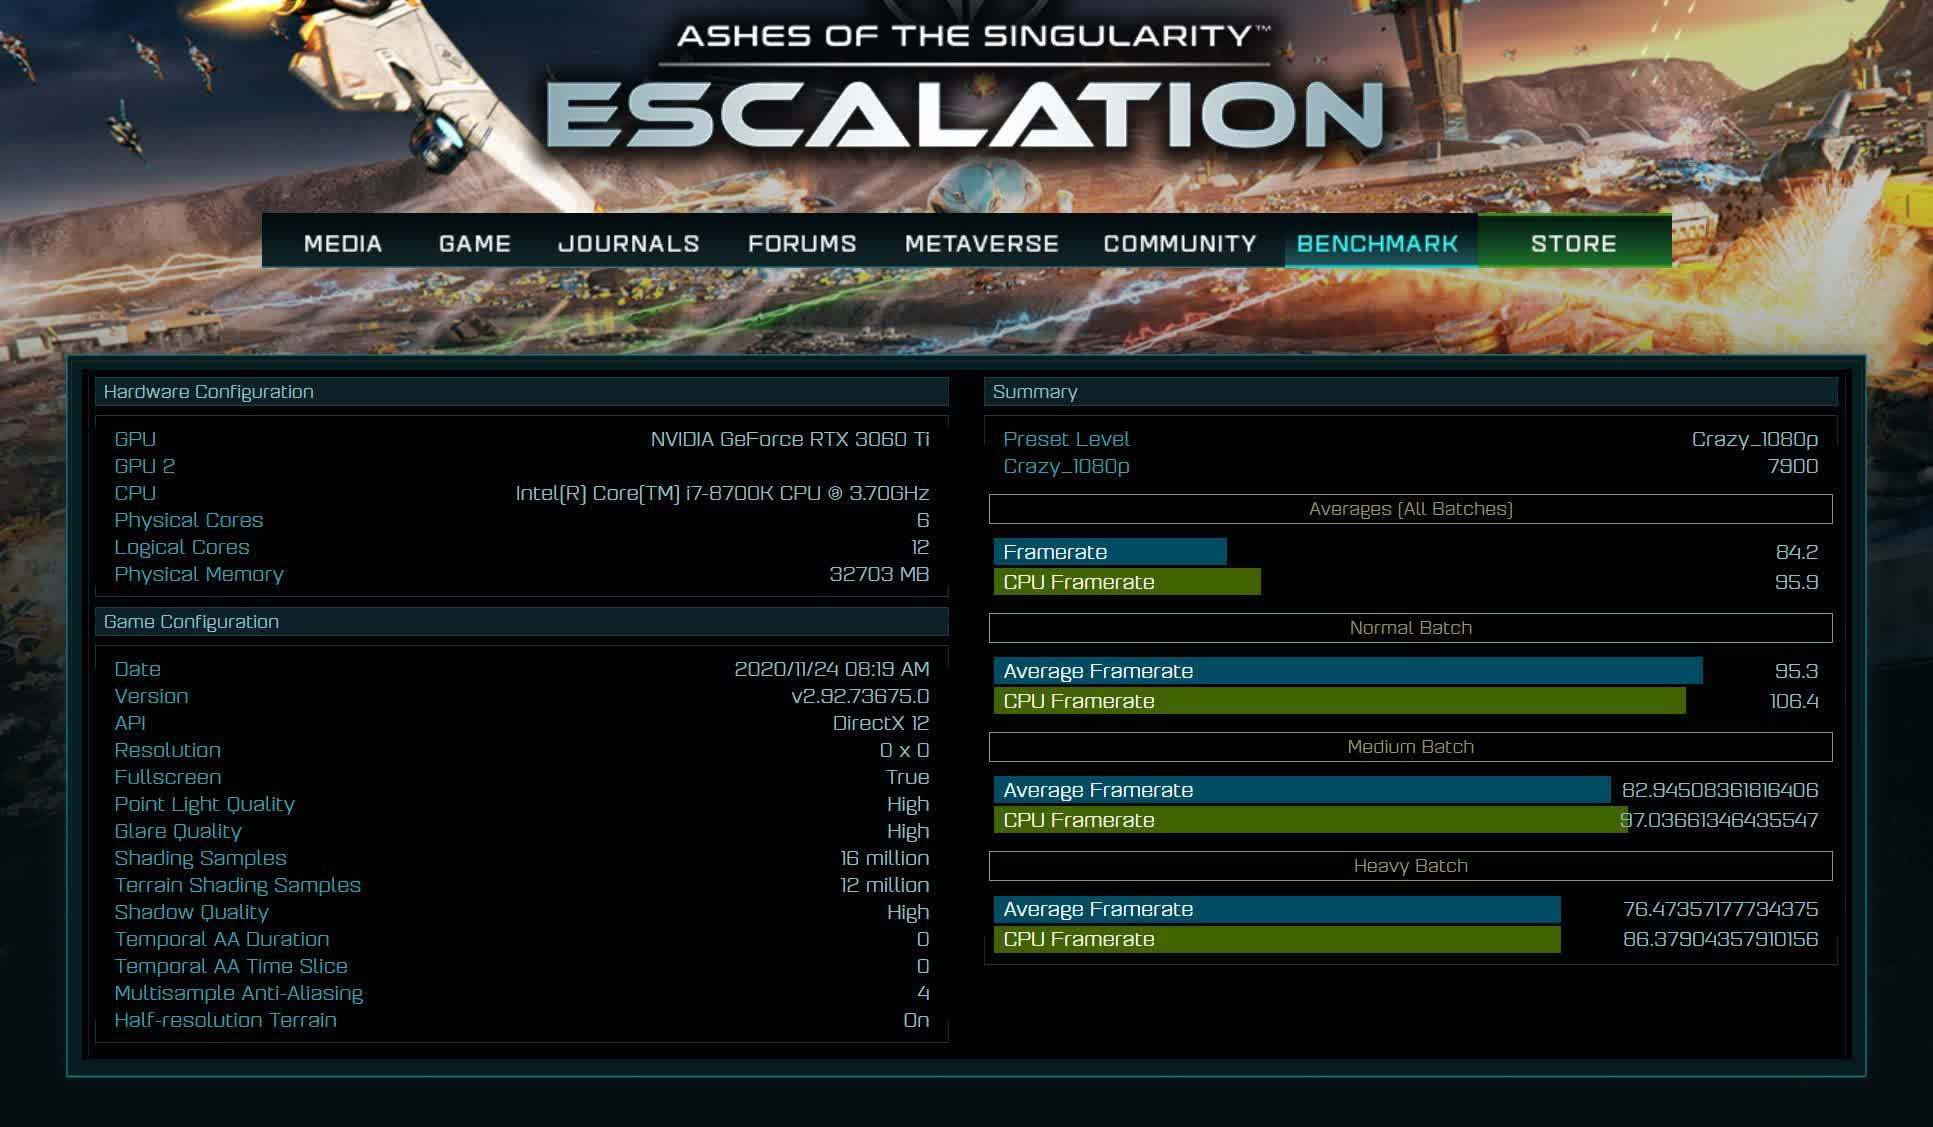 Nvidia Rtx 3060 Ti Appears In Ashes Of The Singularity Benchmark Database